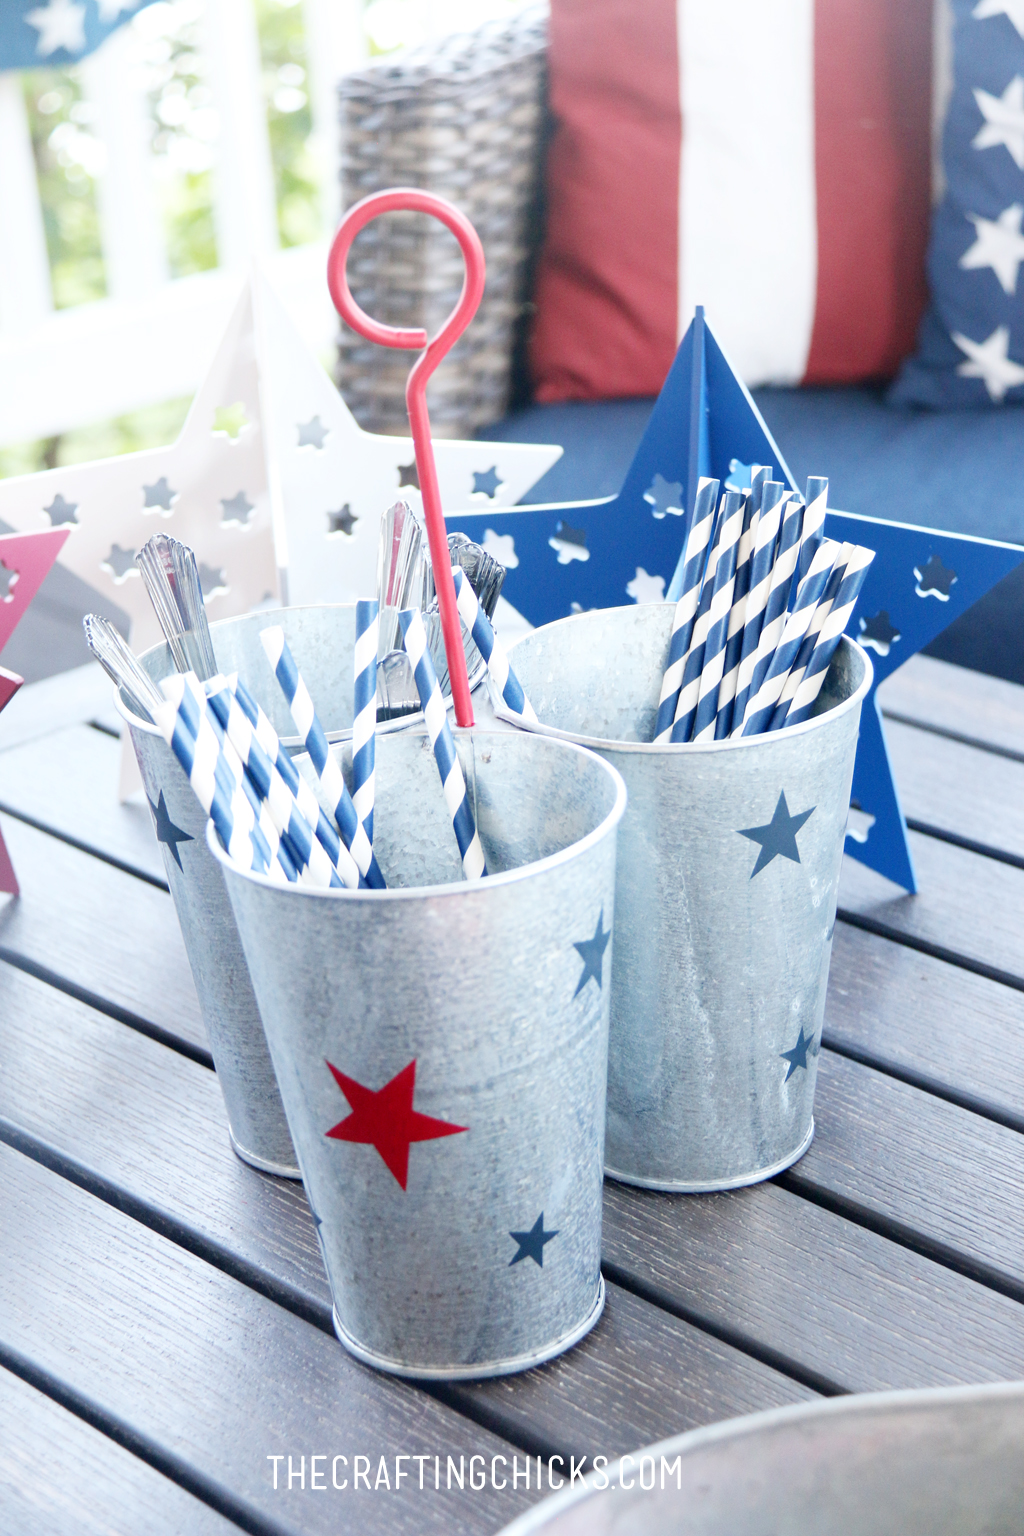 Metal Galvanized utensil holder with red and blue stars.